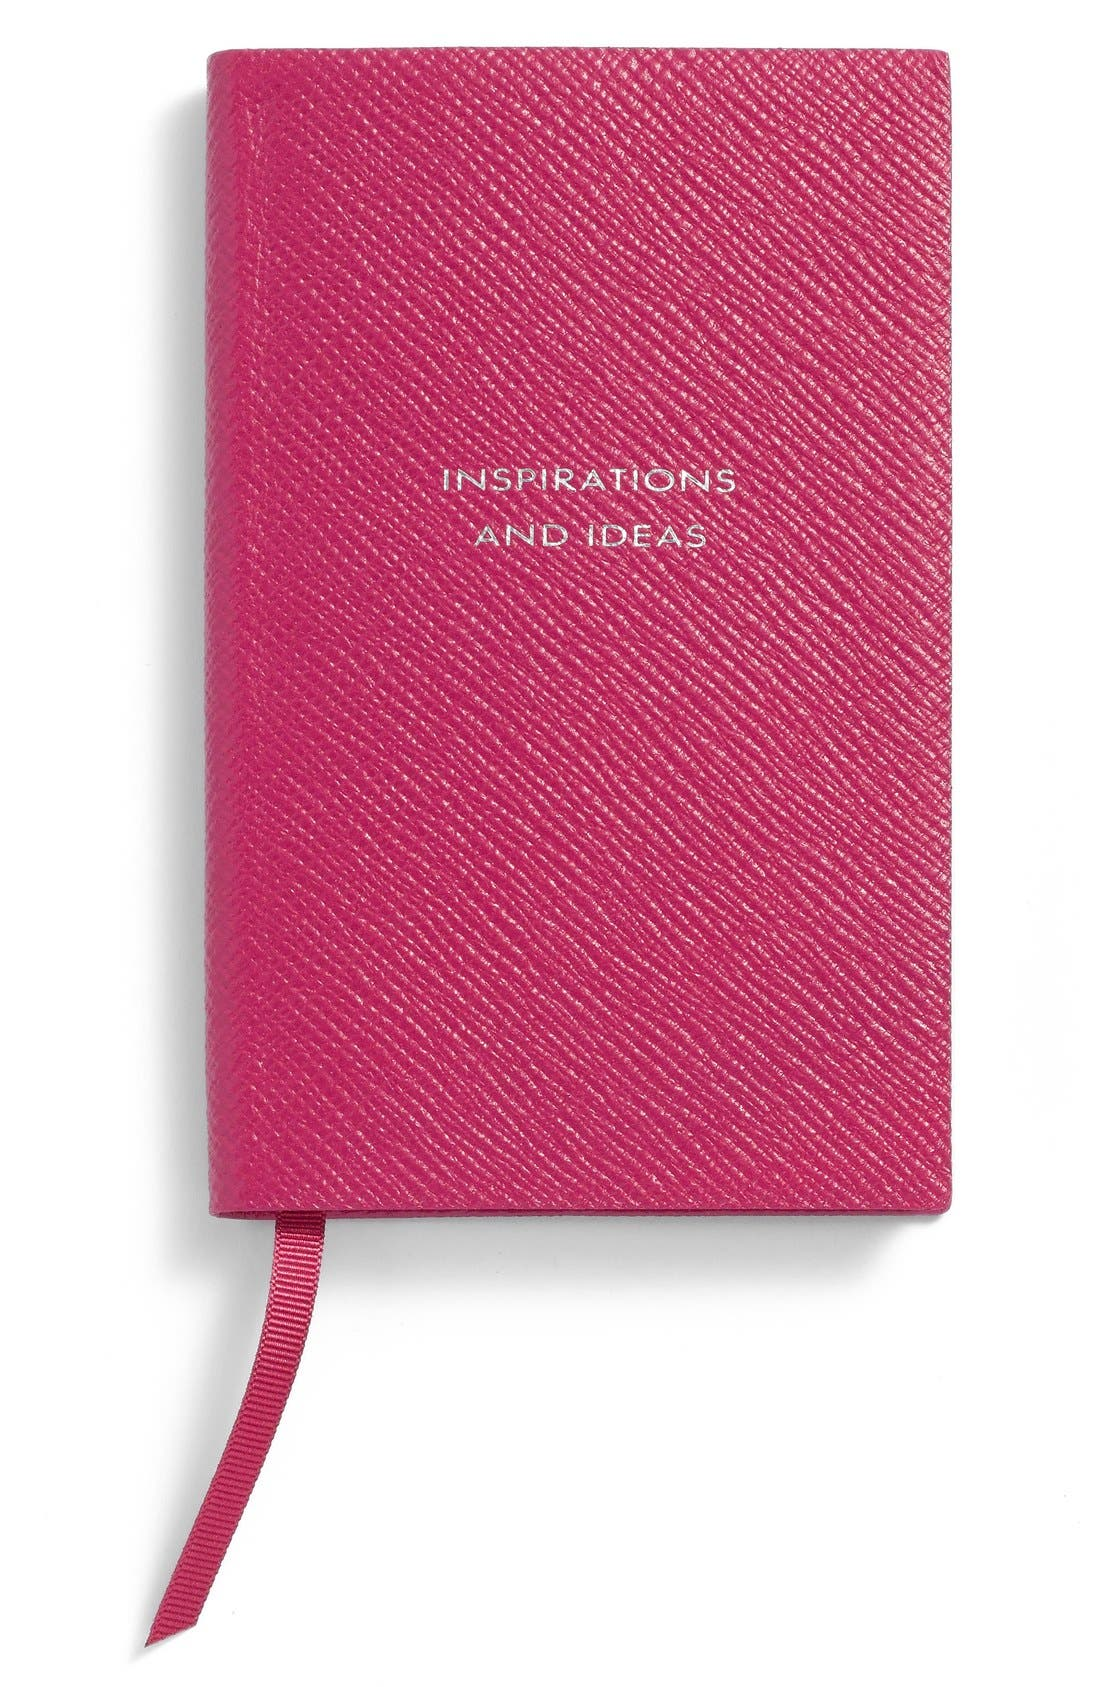 Smythson 'Inspirations and Ideas - Panama' Pocket Notebook